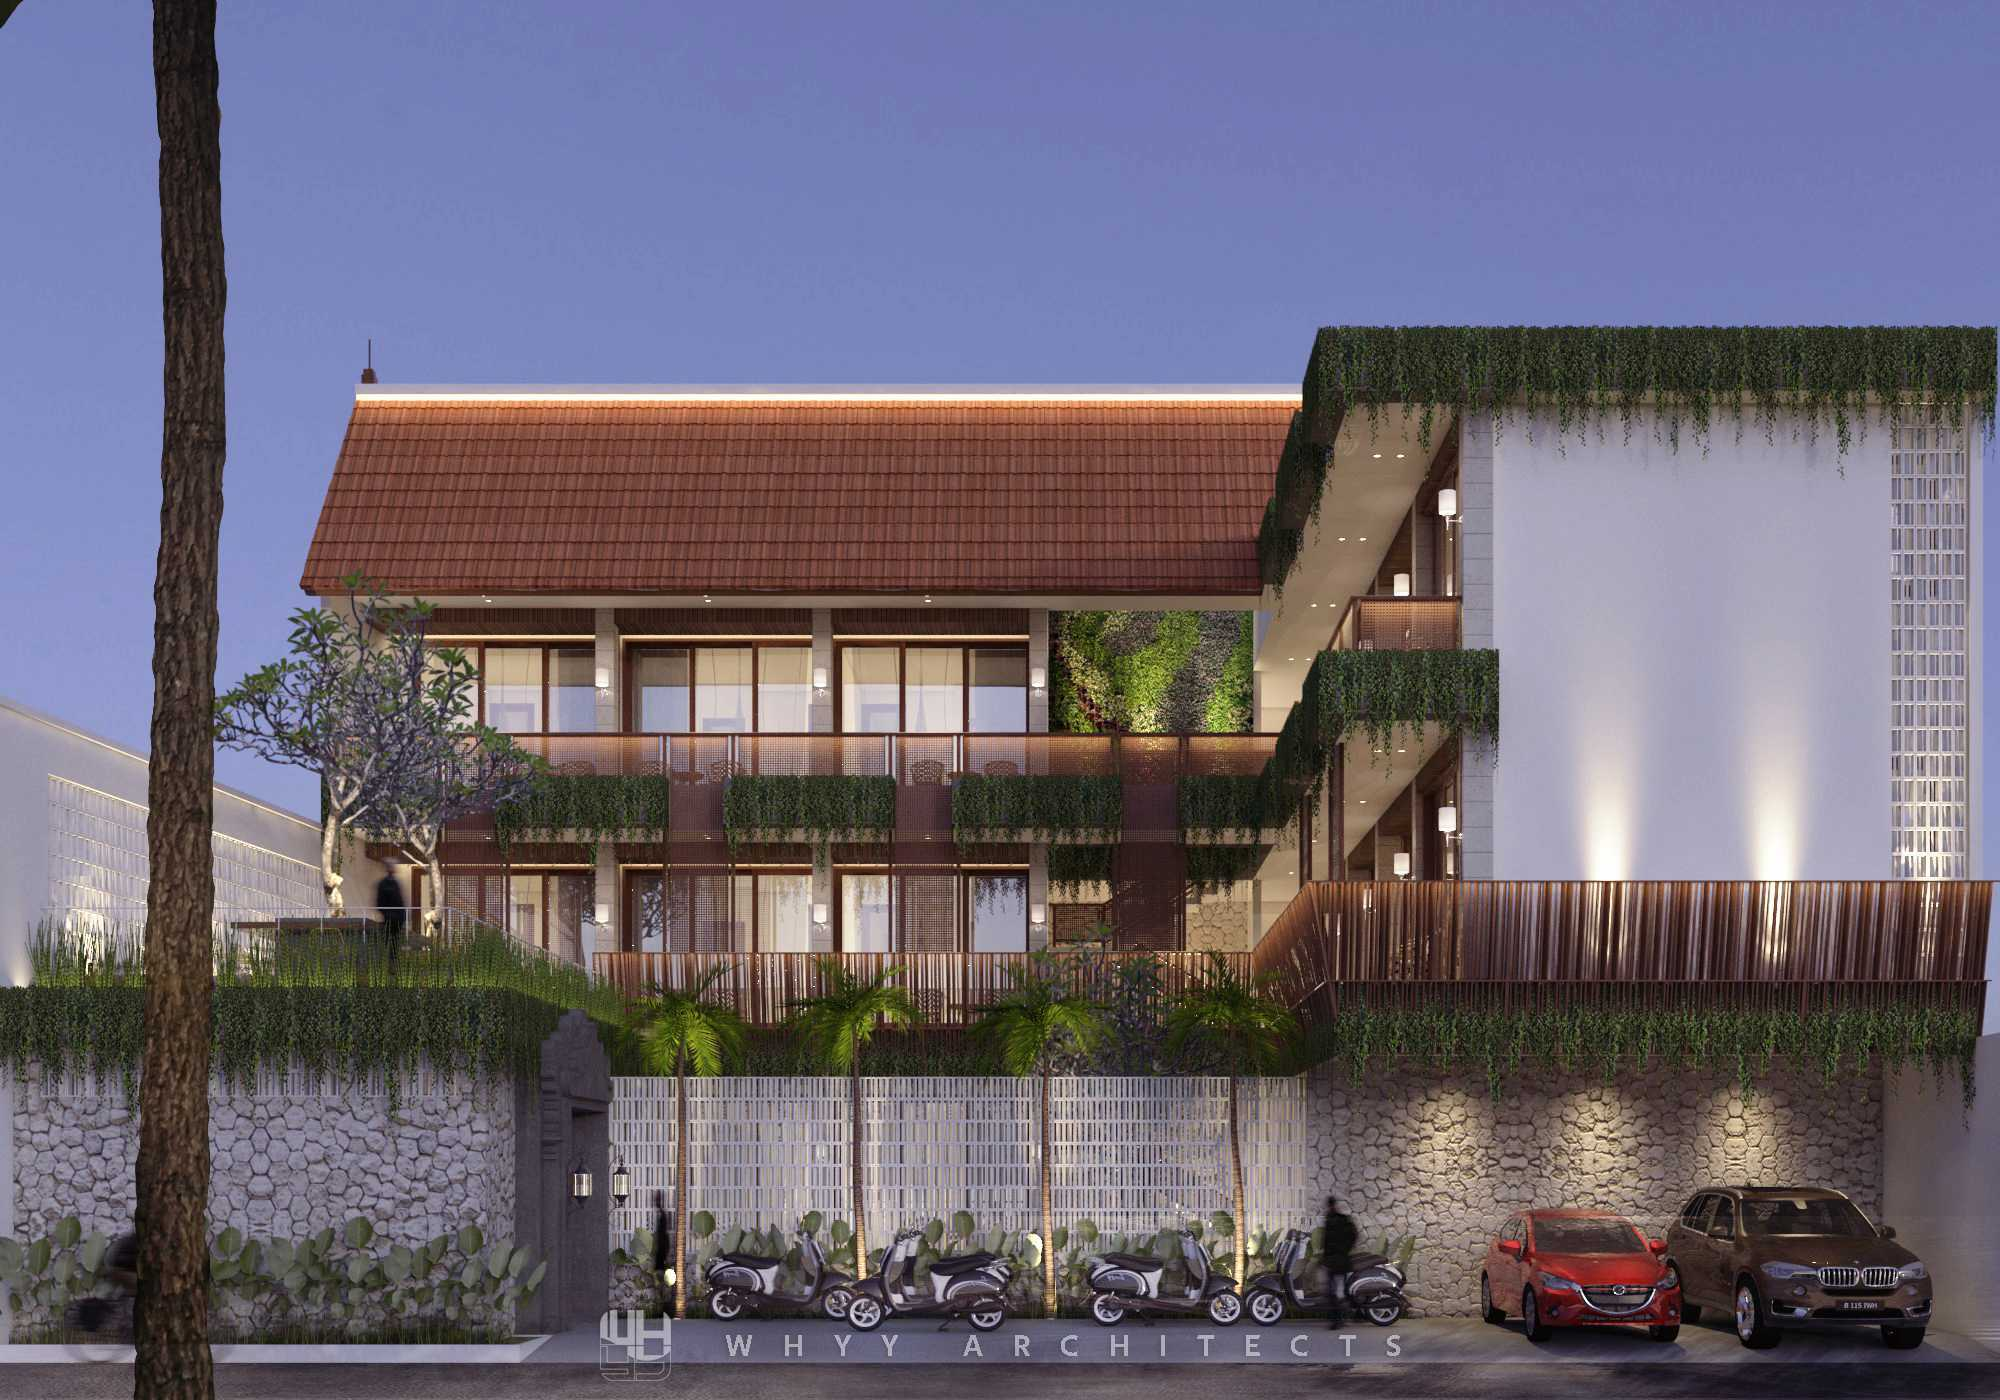 Whyy Architects Guest House Bali Bali, Indonesia Bali, Indonesia Whyy-Architects-Guest-House-Bali   90713